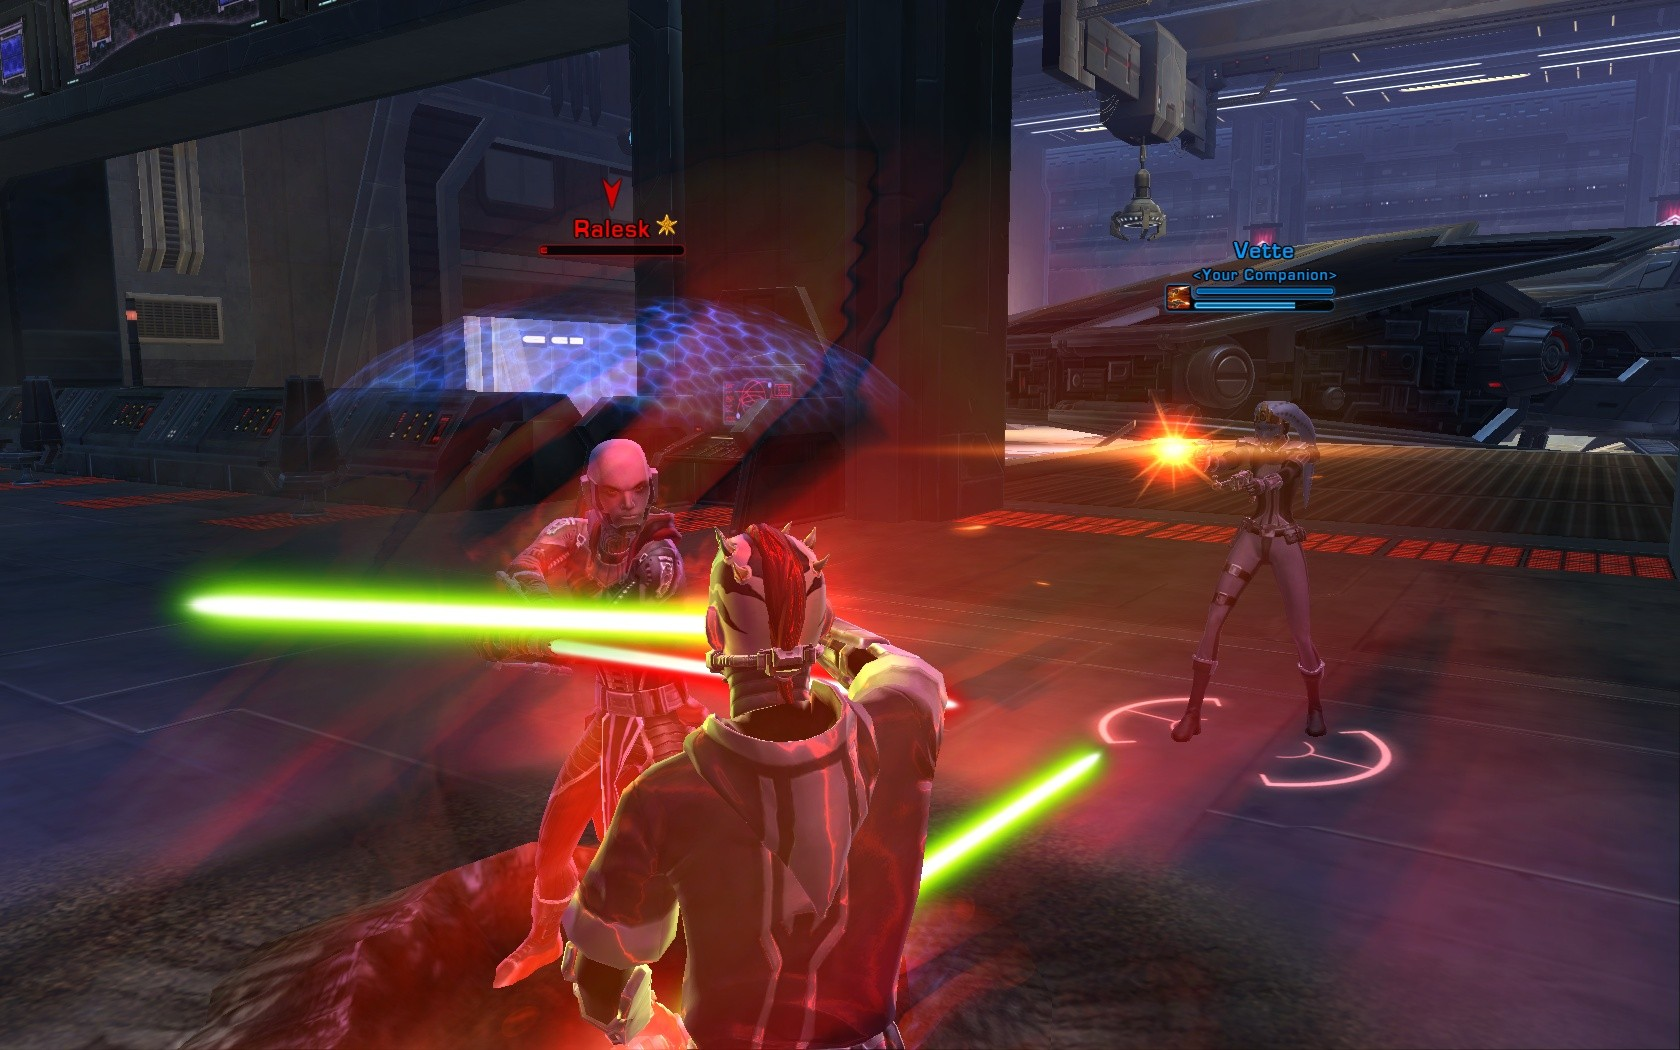 Star Wars: The Old Republic - The ship belong to me!